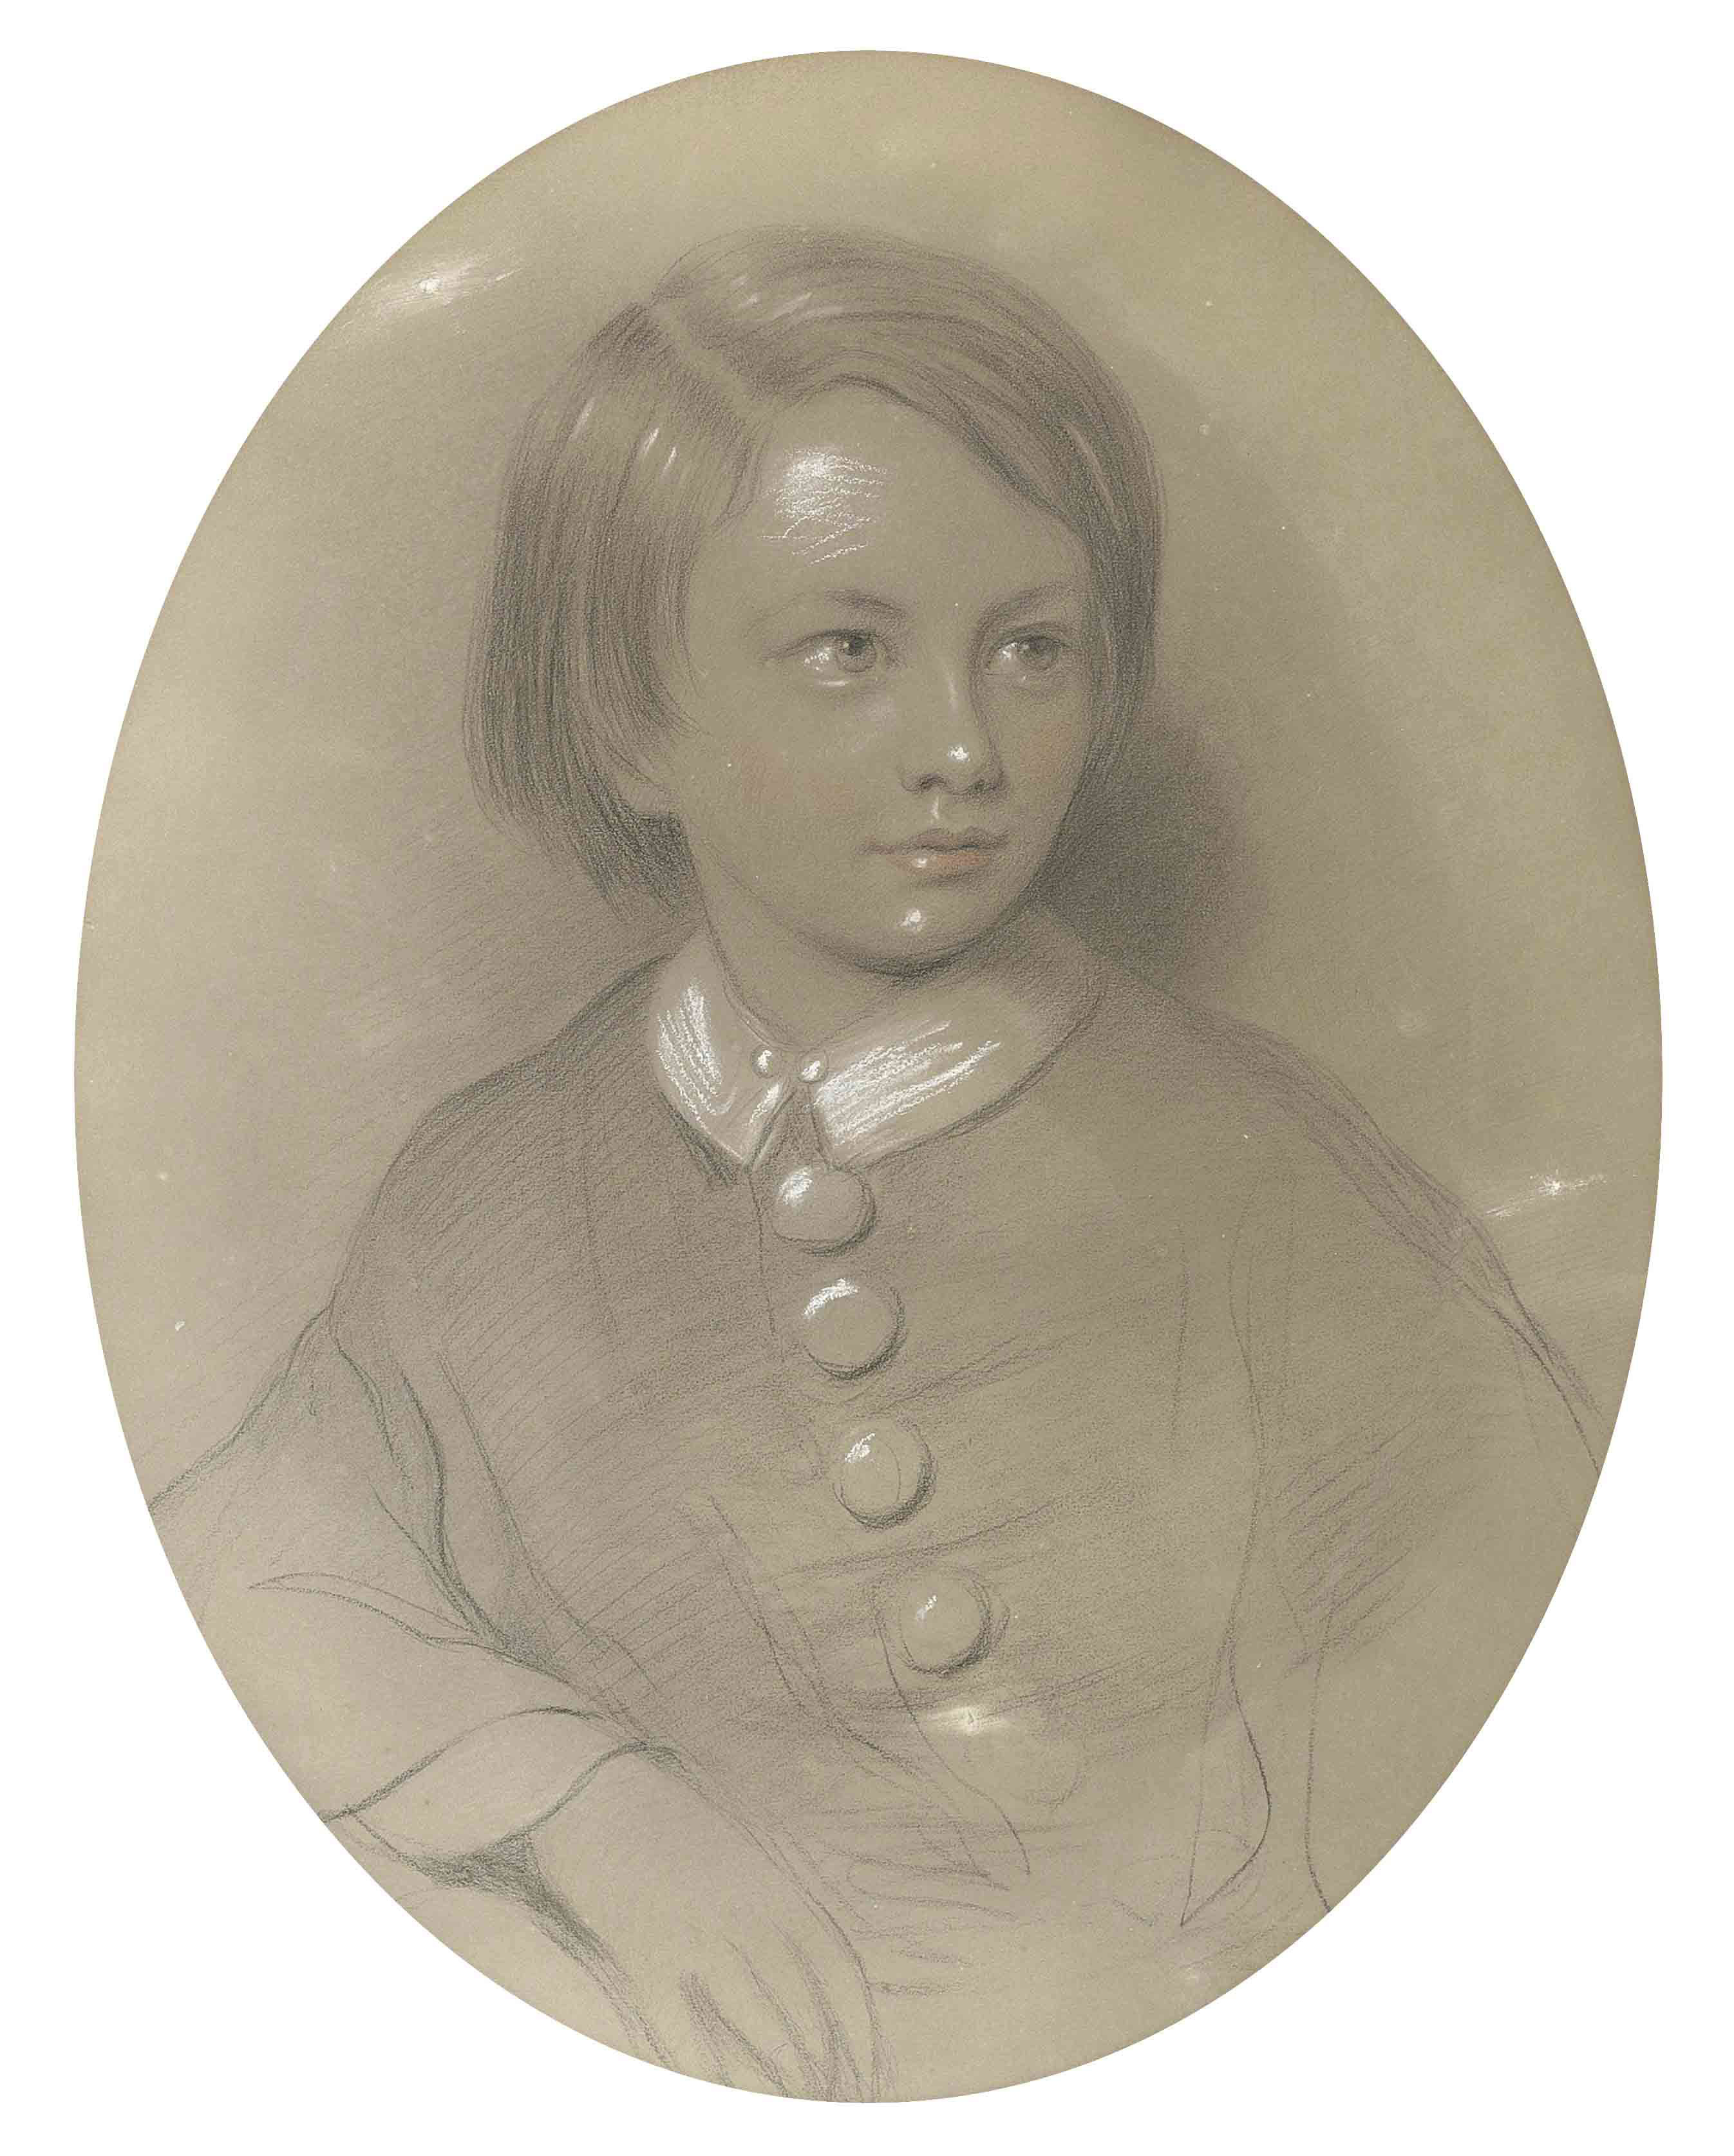 Portrait of John Luke George Hely-Hutchinson, 5th Earl of Donoughmore (1848-1900) as a child, half-length